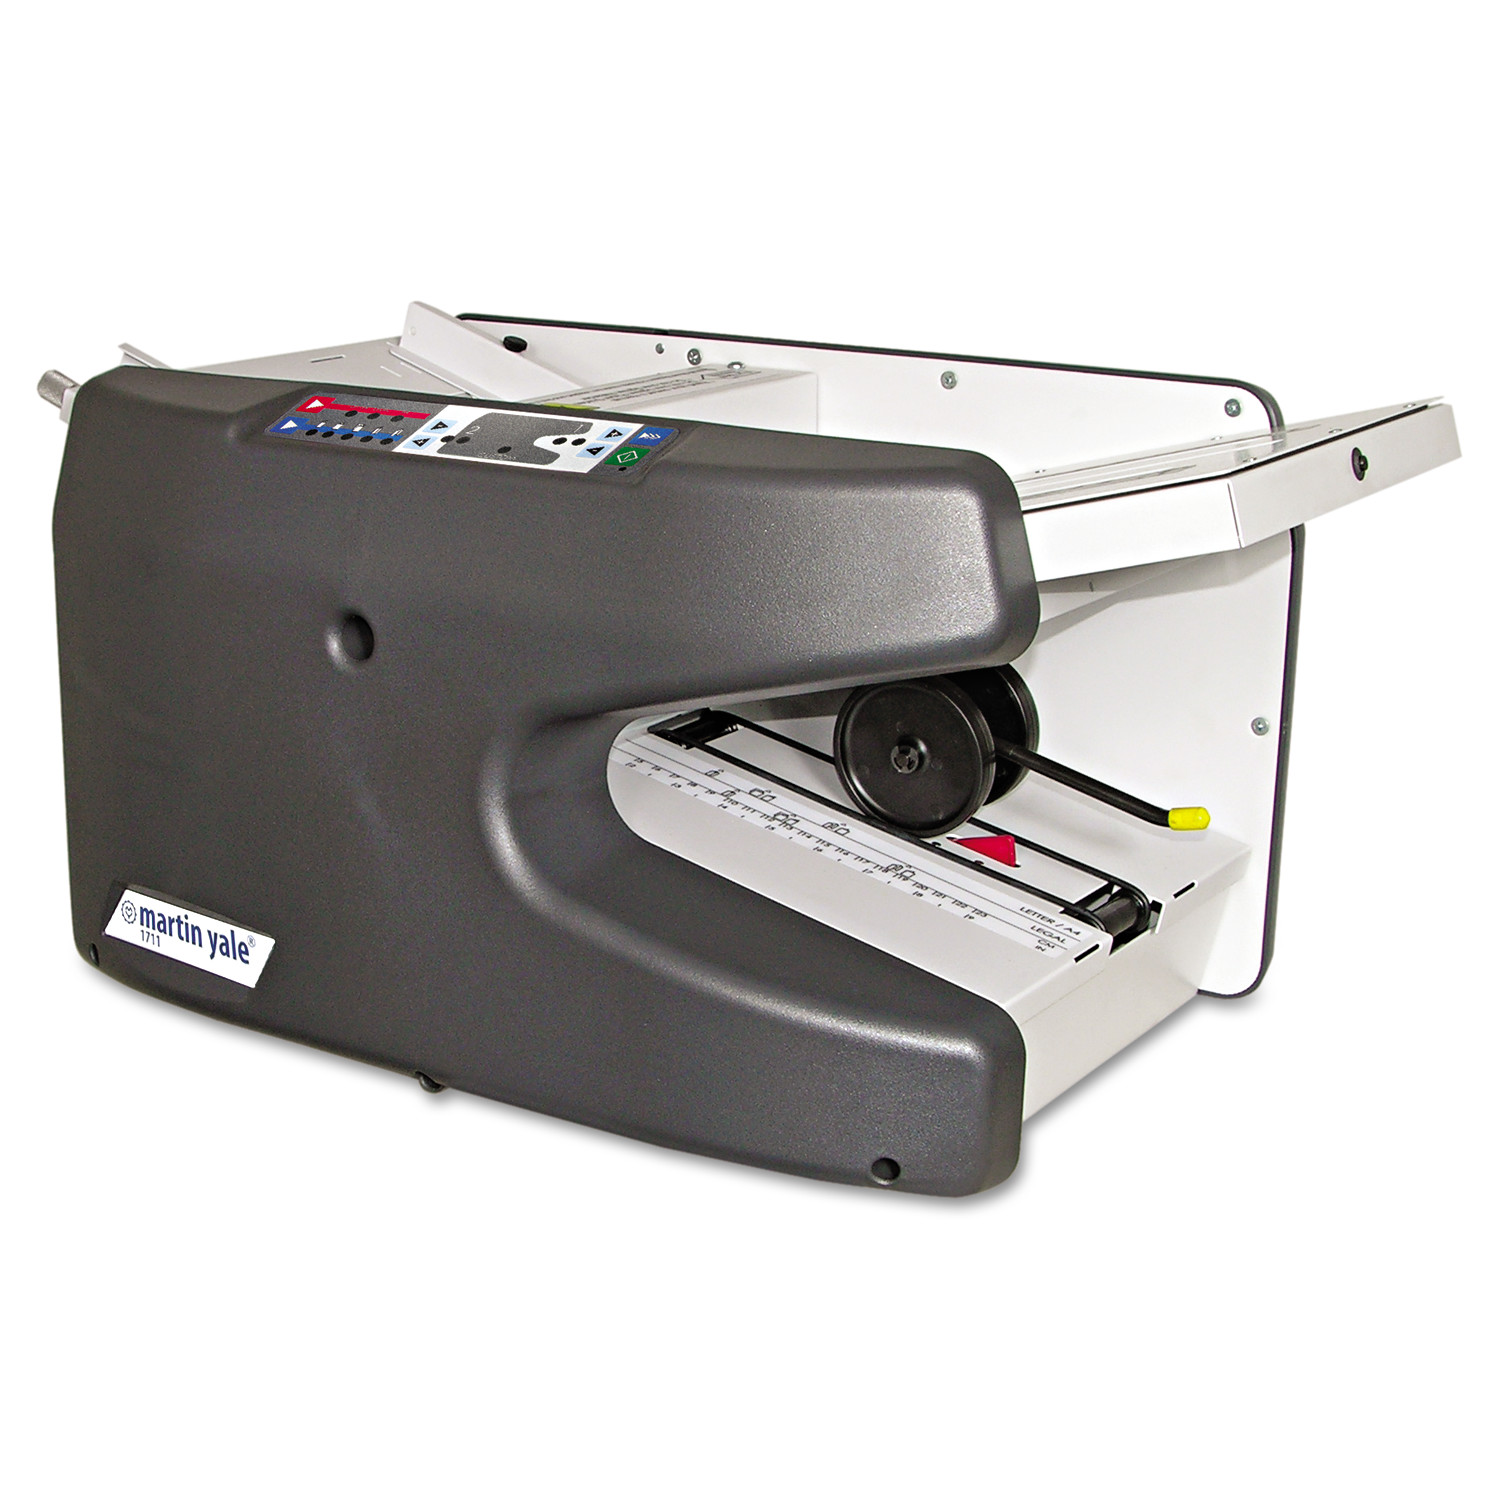 Martin Yale Premier Electronic Ease-Of-Use Semi-Auto Folder, Charcoal